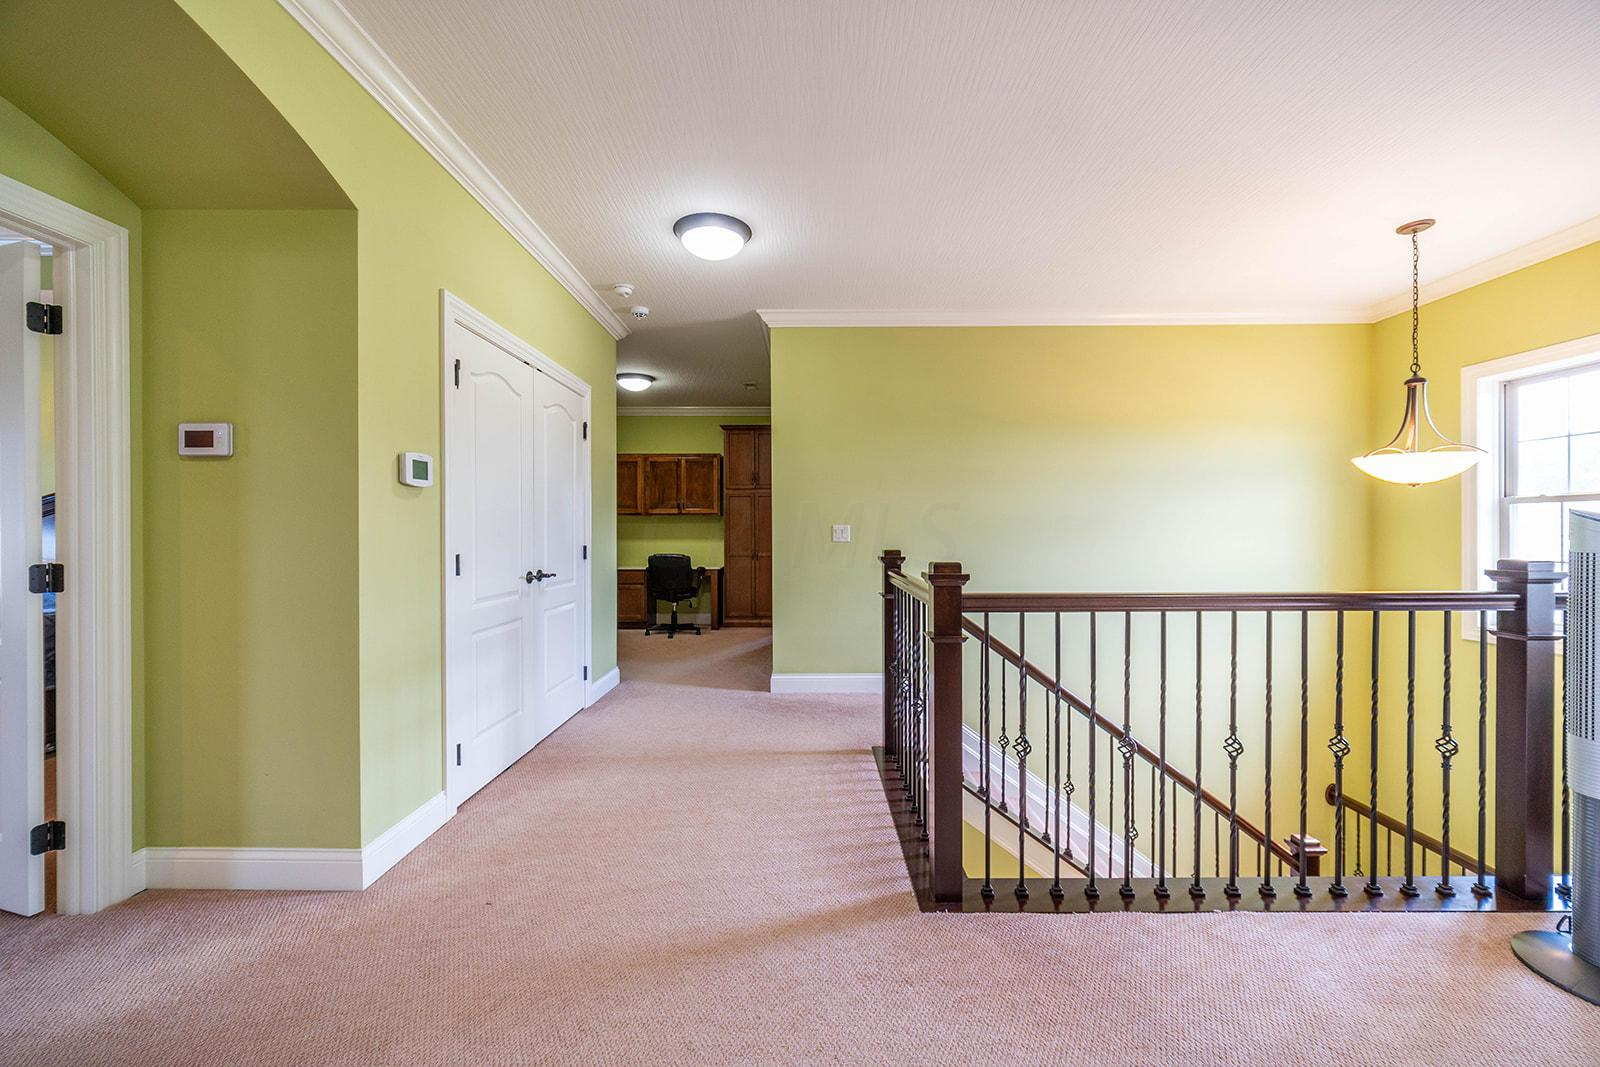 6869 Enfield Trace, Dublin, Ohio 43017, 4 Bedrooms Bedrooms, ,5 BathroomsBathrooms,Residential,For Sale,Enfield Trace,220023980